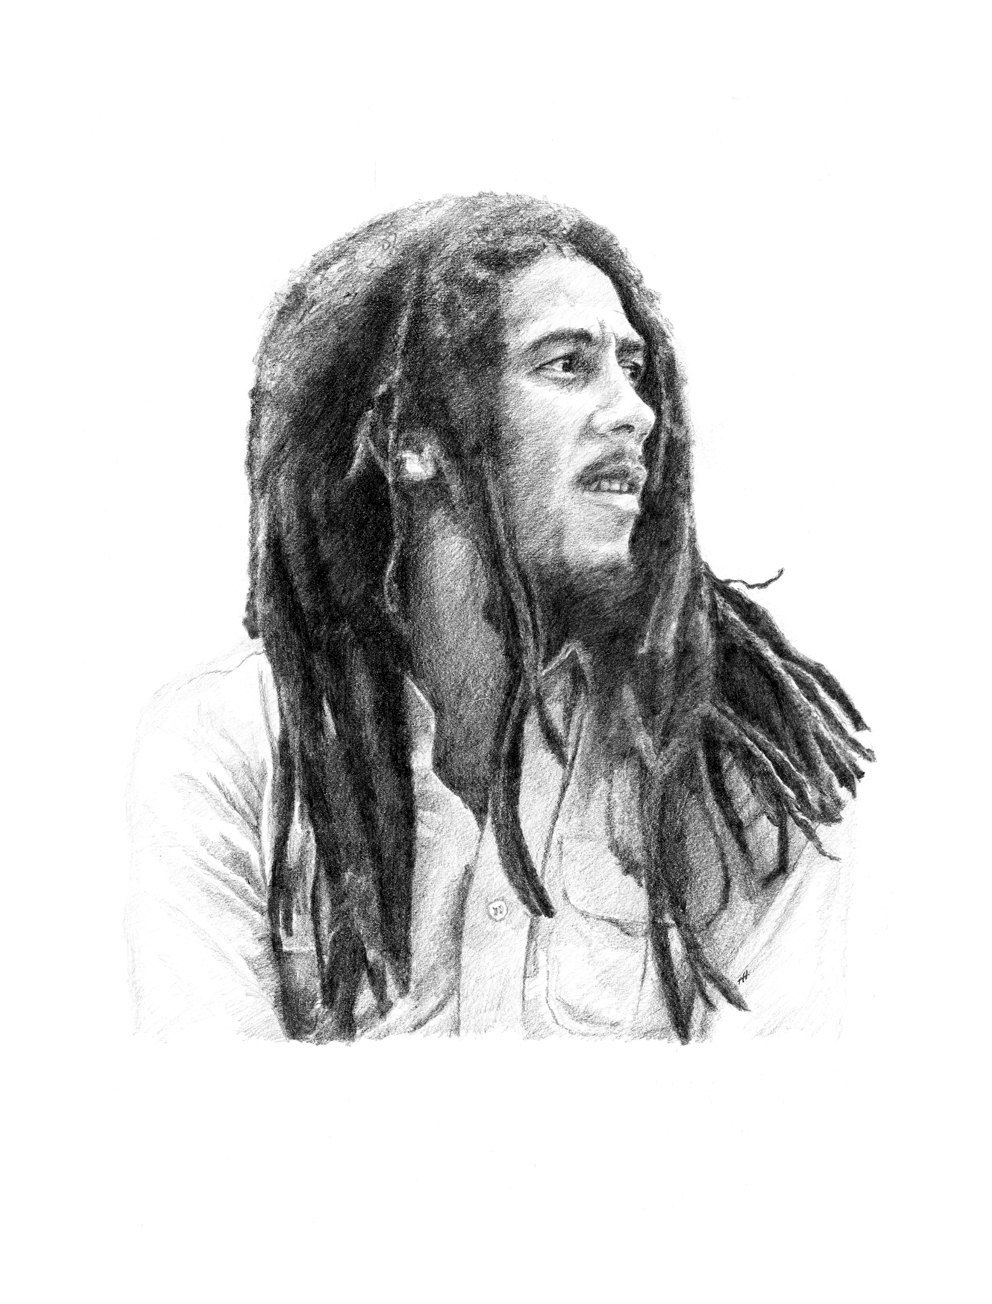 Bob marley pencil drawing in 2019 bob marley pencil drawings